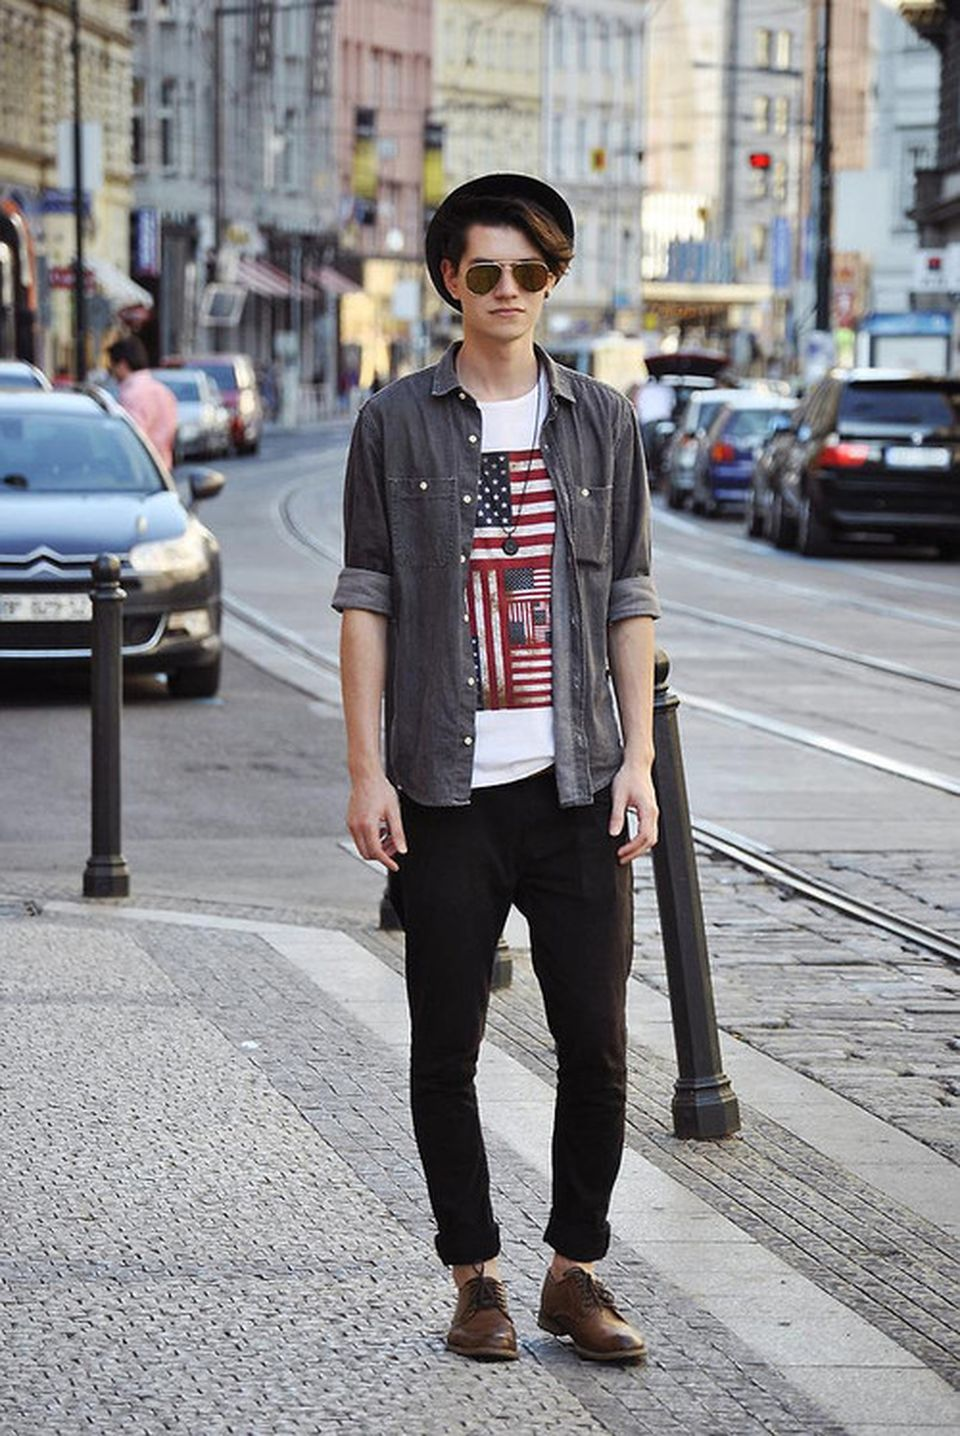 Casual Indie Mens Fashion Outfits Style 8: Casual Indie Mens Fashion Outfits Style 56